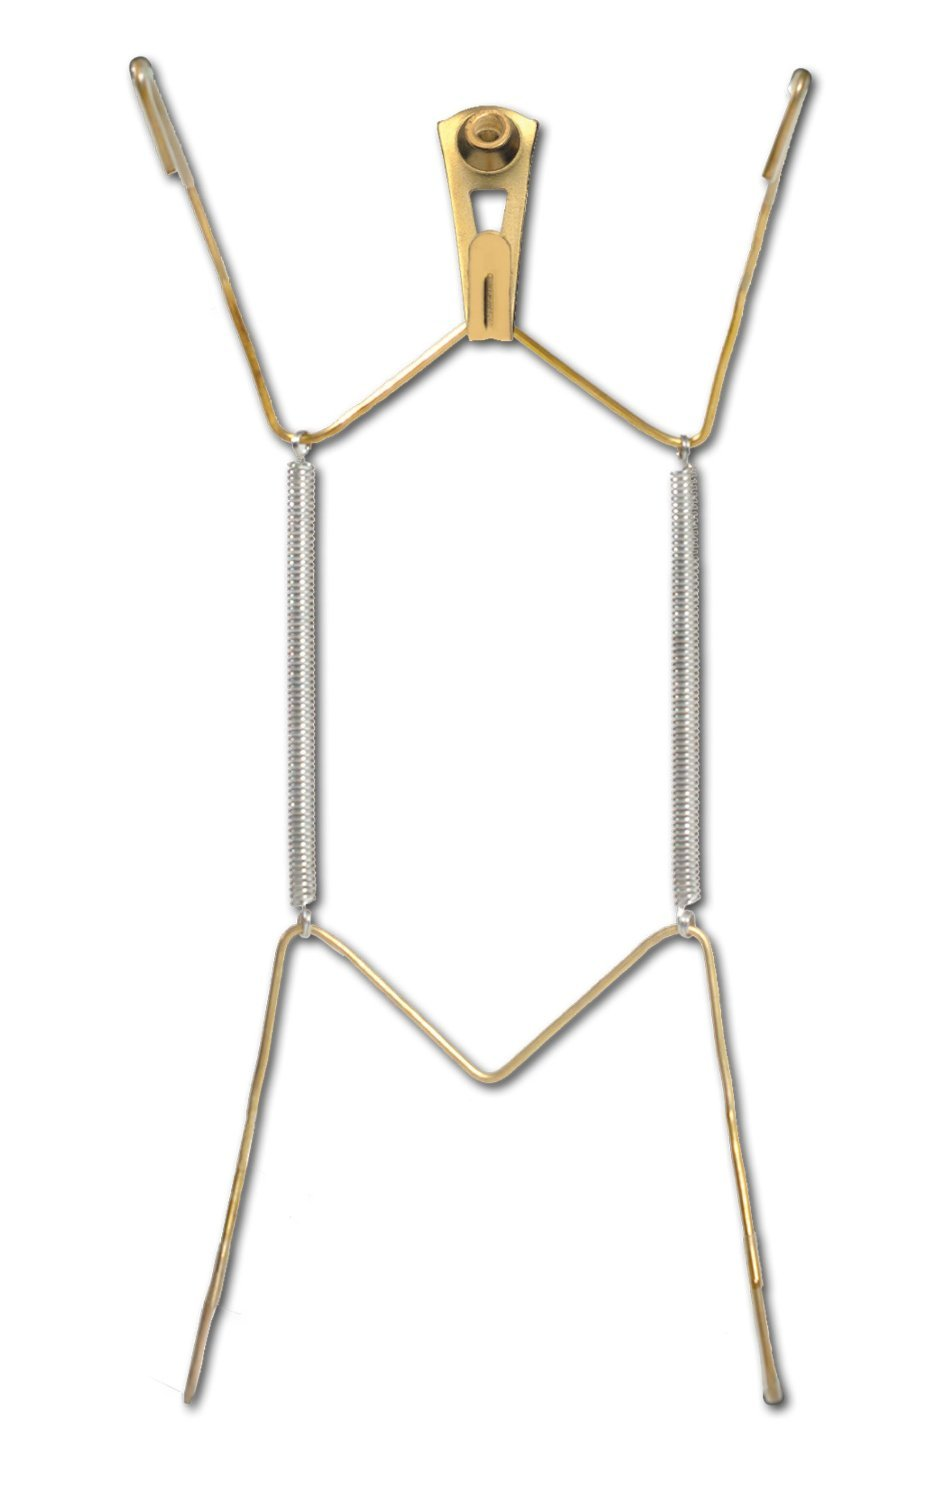 Amazon.com Impex Systems #50472 10-14\ 30LB Plate Hanger (2-Pack) Home \u0026 Kitchen  sc 1 st  Amazon.com & Amazon.com: Impex Systems #50472 10-14\